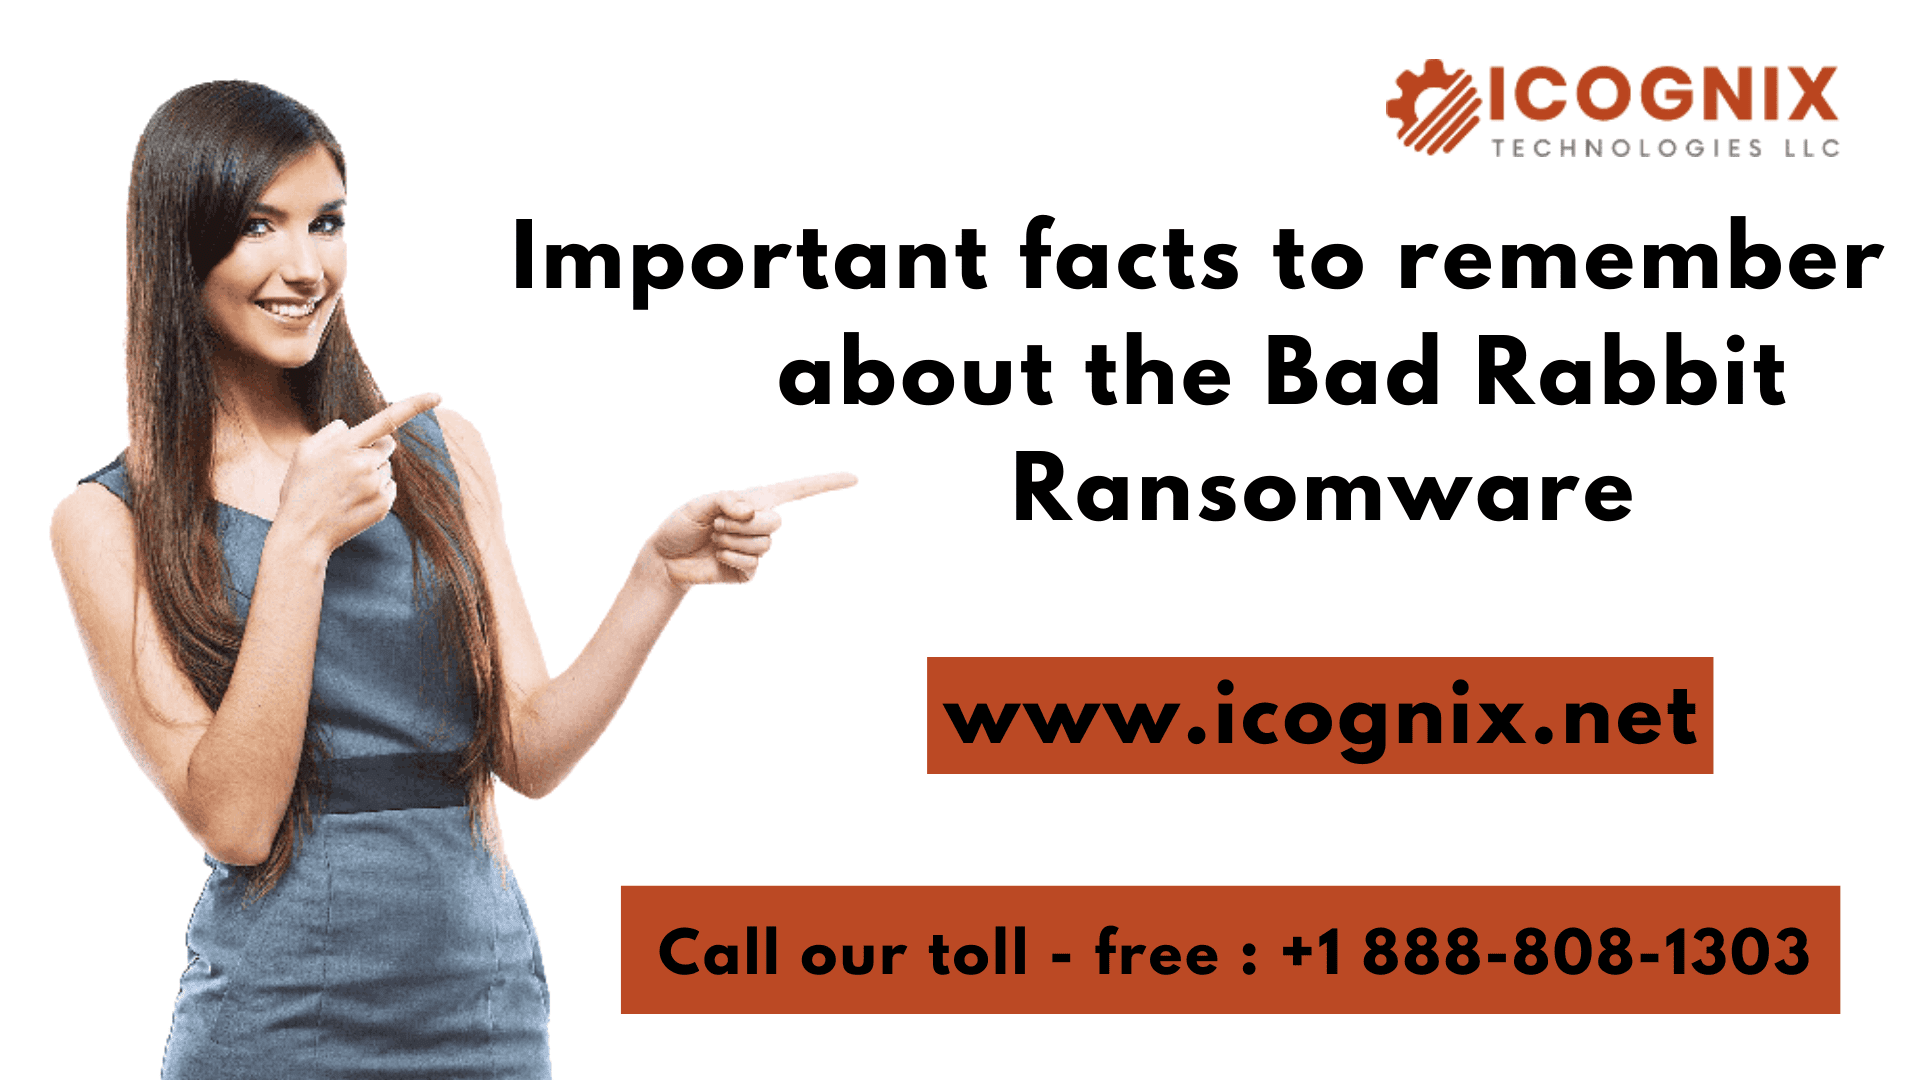 Important facts to remember about the Bad Rabbit Ransomware